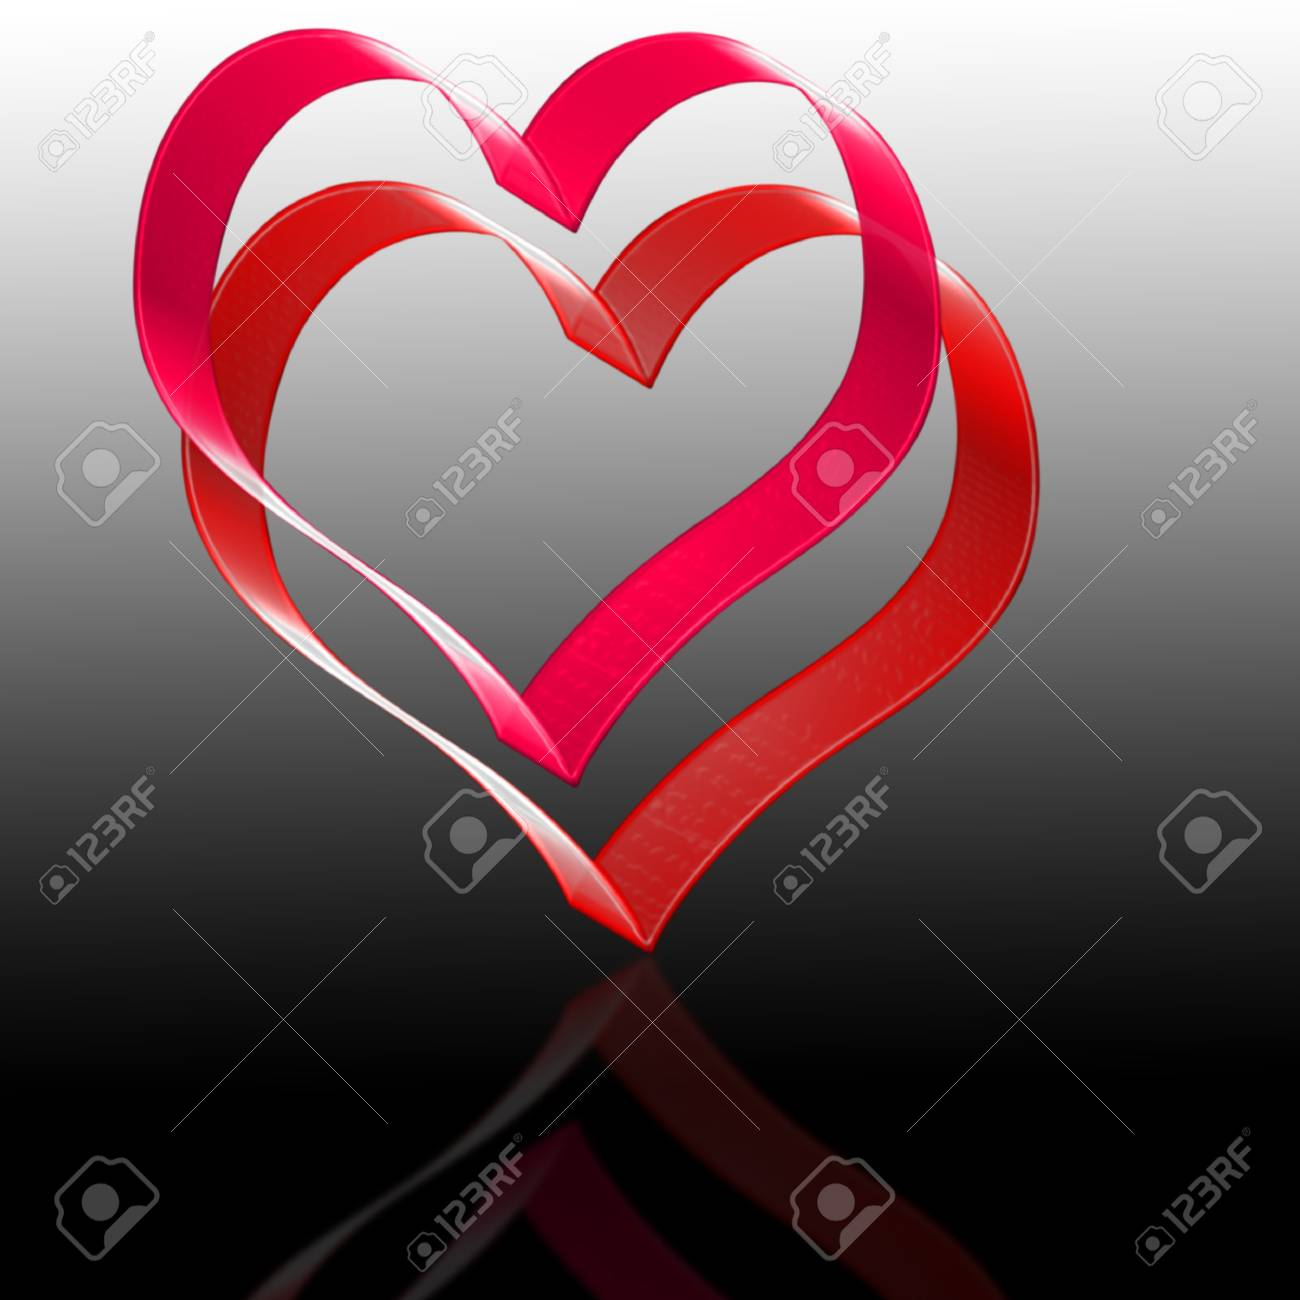 two hearts. the valentine's day. Stock Photo - 17766607